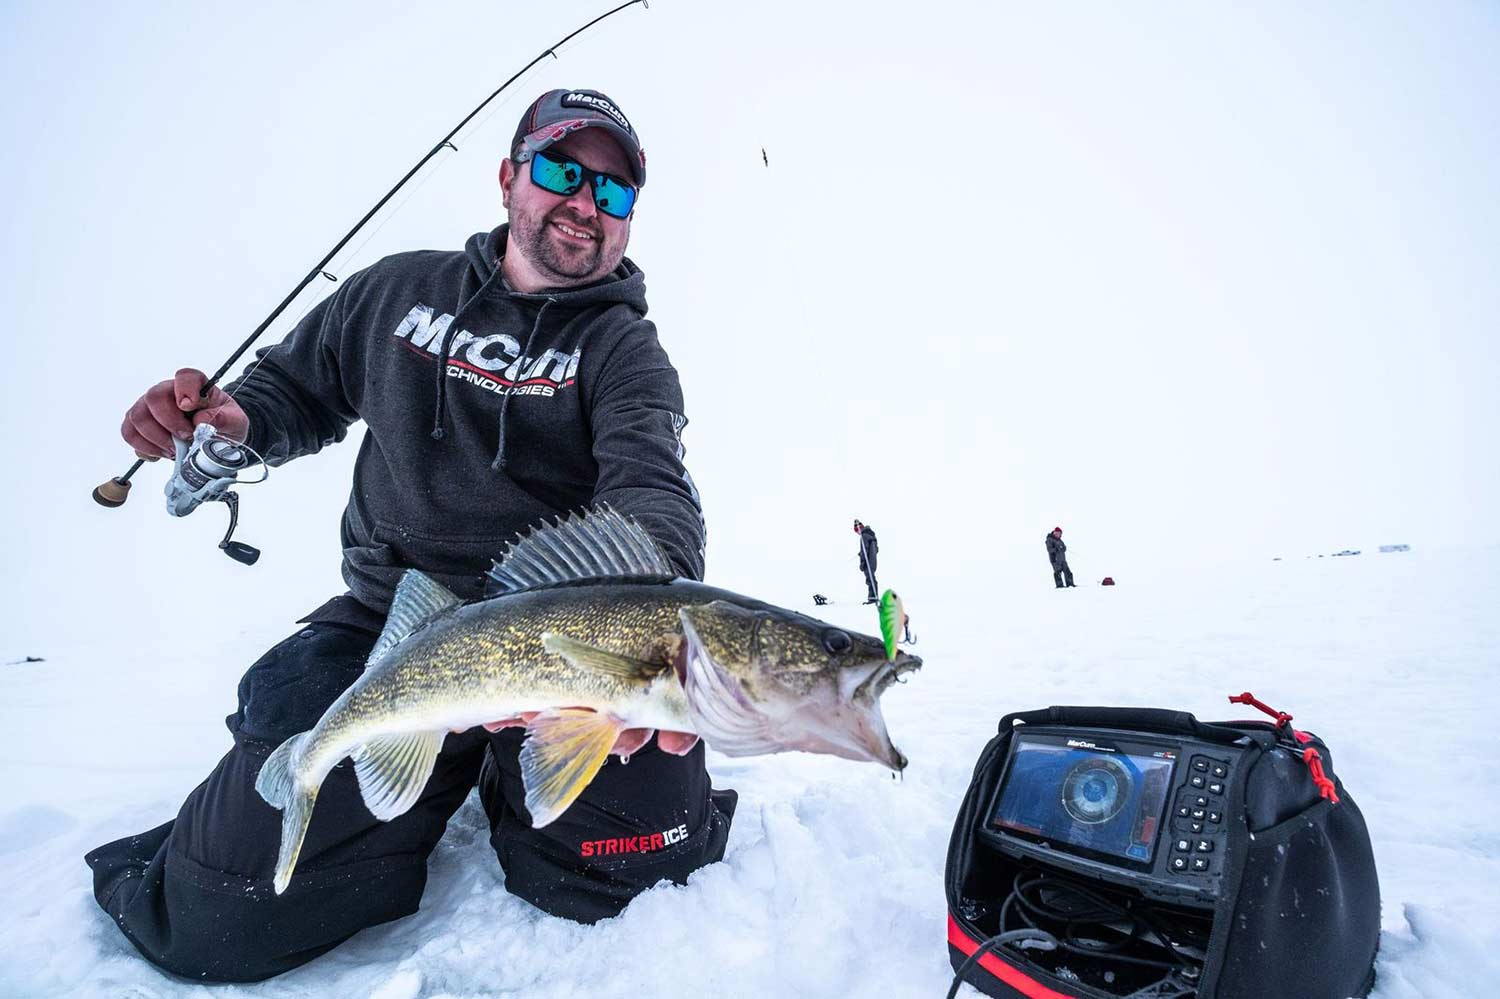 An angler holds a walleye caught from an ice fishing hole.